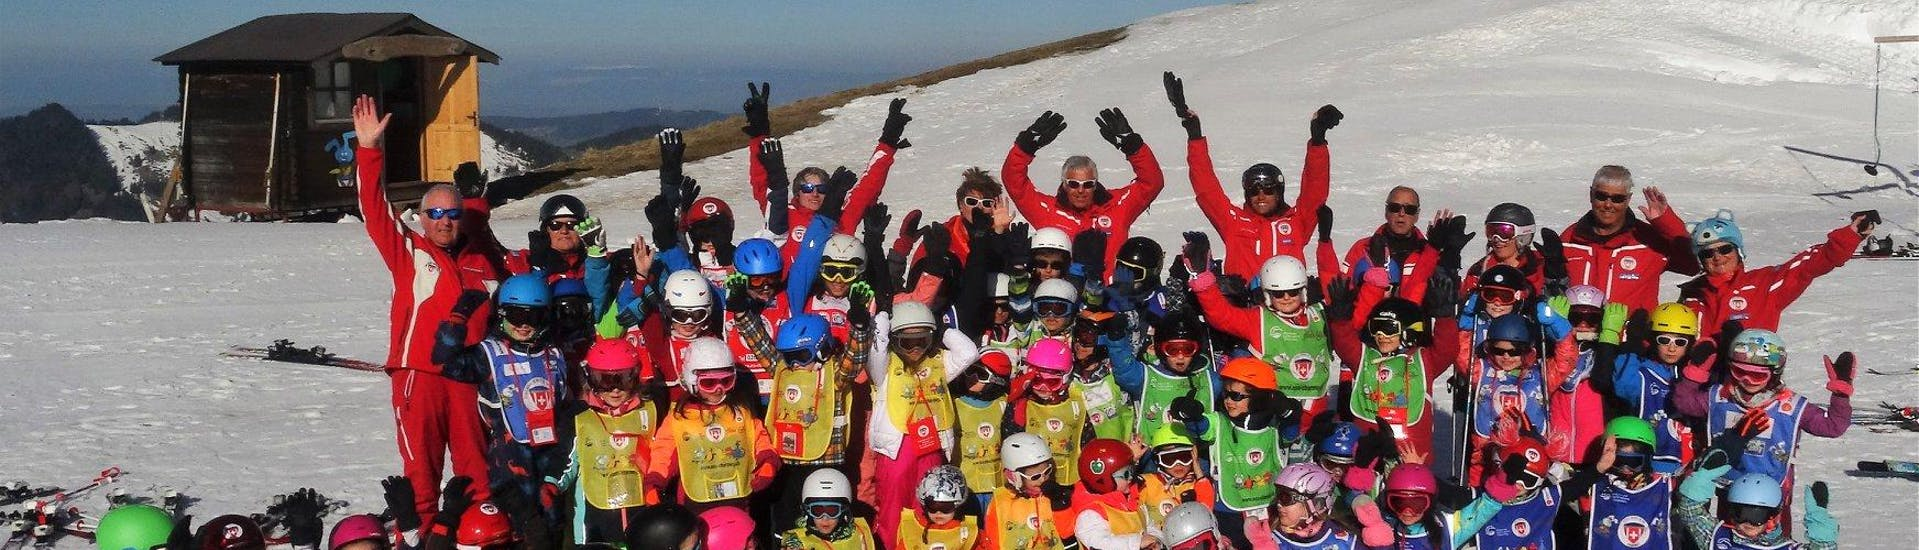 Students from the the swiss ski school Charmey and their ski instructors are gathered for a group photo celebrating their Kids Ski Lessons (6-15 years) - 1 day.